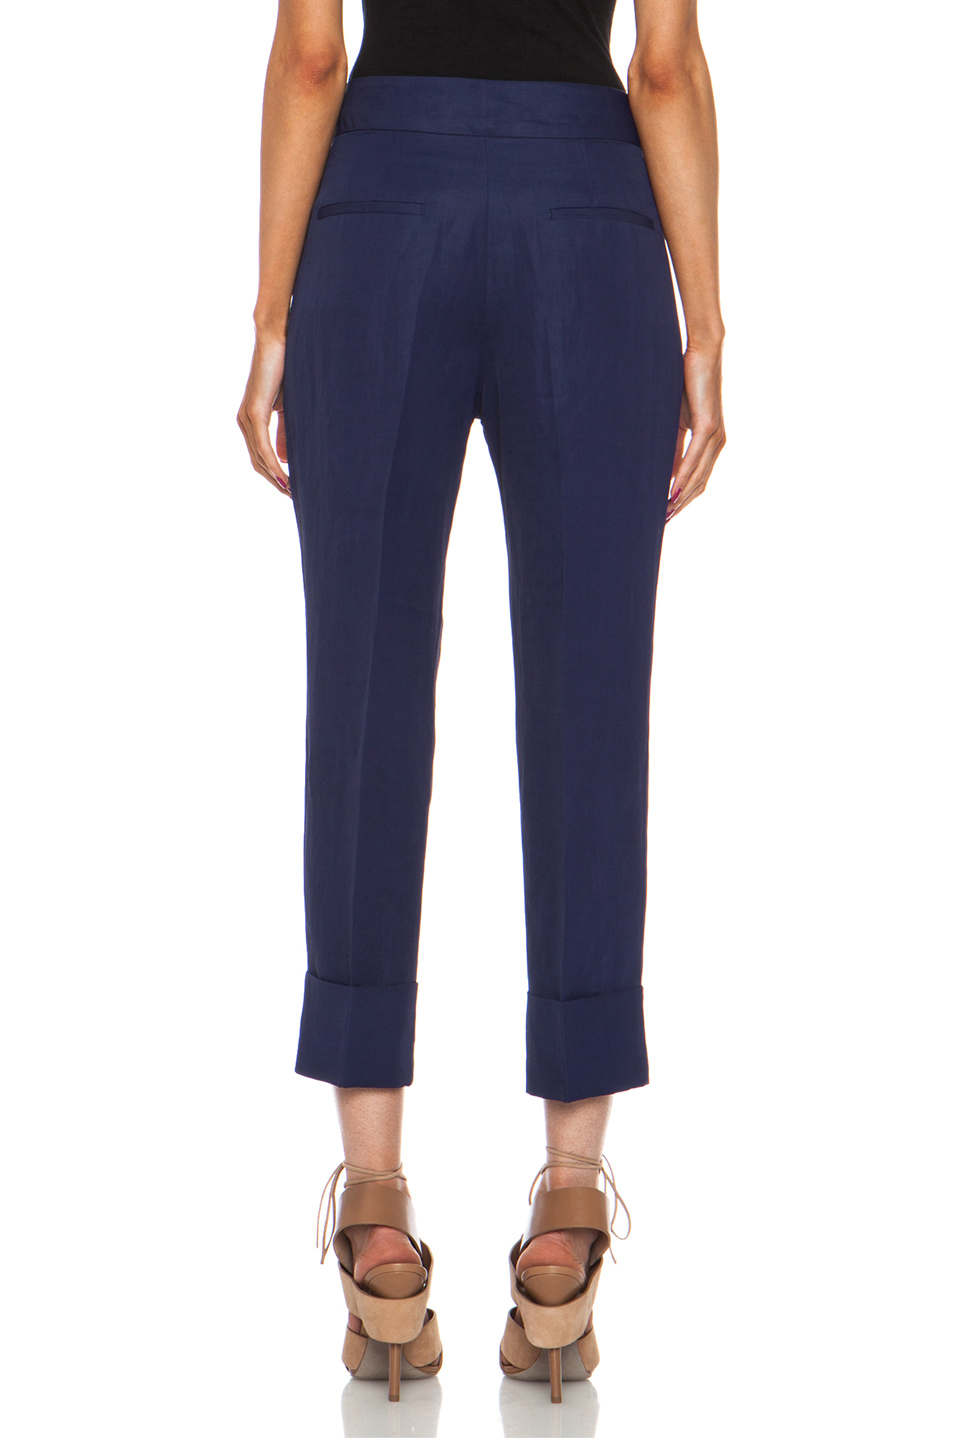 Acne Studios | Saviour Linen-Blend Trouser in Midnight Blue